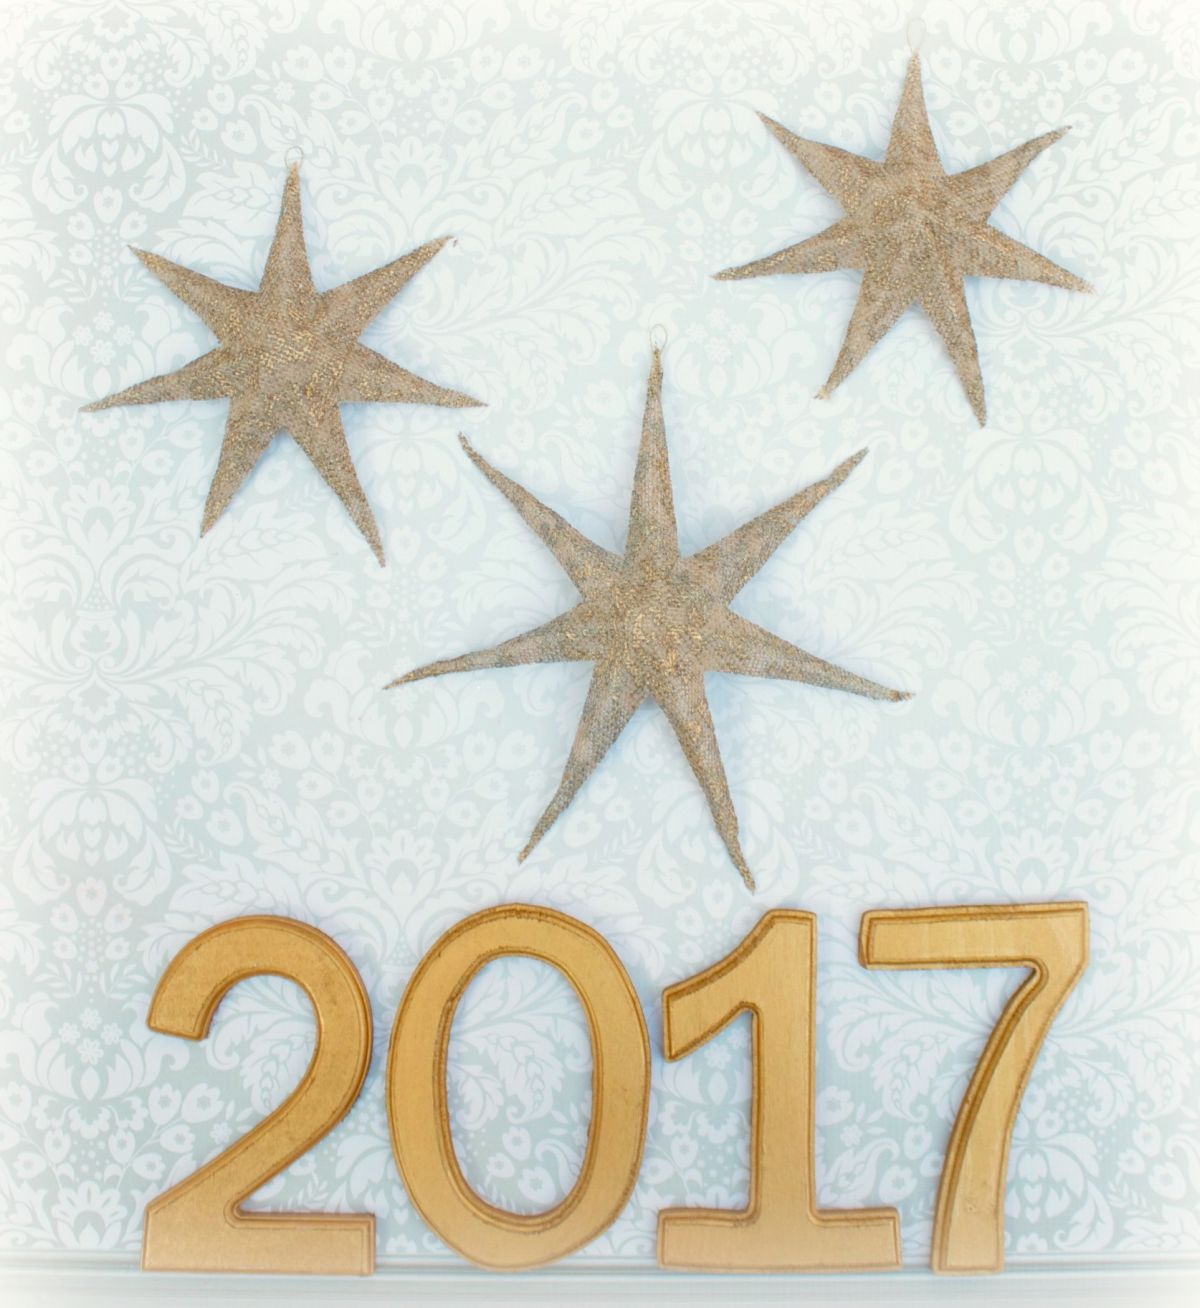 New Years Star Projec - 2017